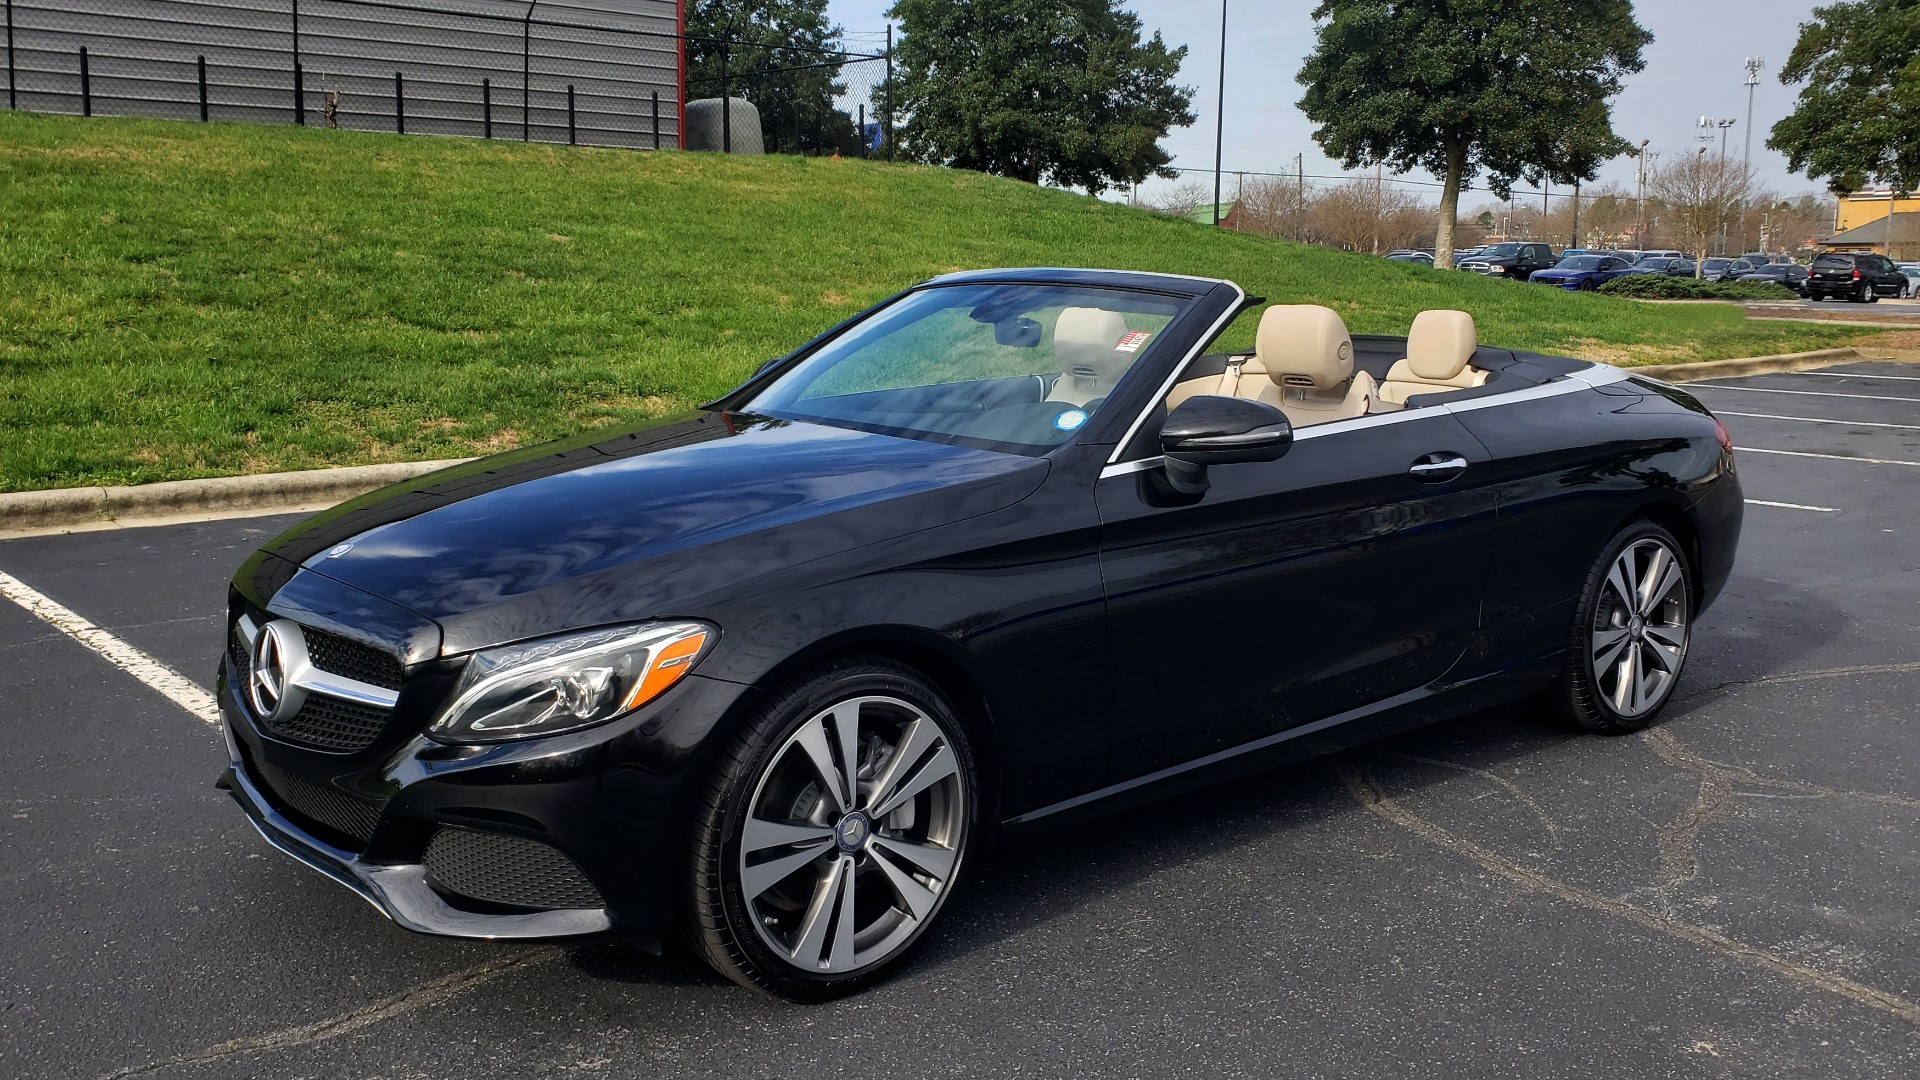 Used 2017 Mercedes-Benz C-Class C 300 CABRIOLET SPORT / PREMIUM / NAV / BURMESTER SOUND for sale Sold at Formula Imports in Charlotte NC 28227 1